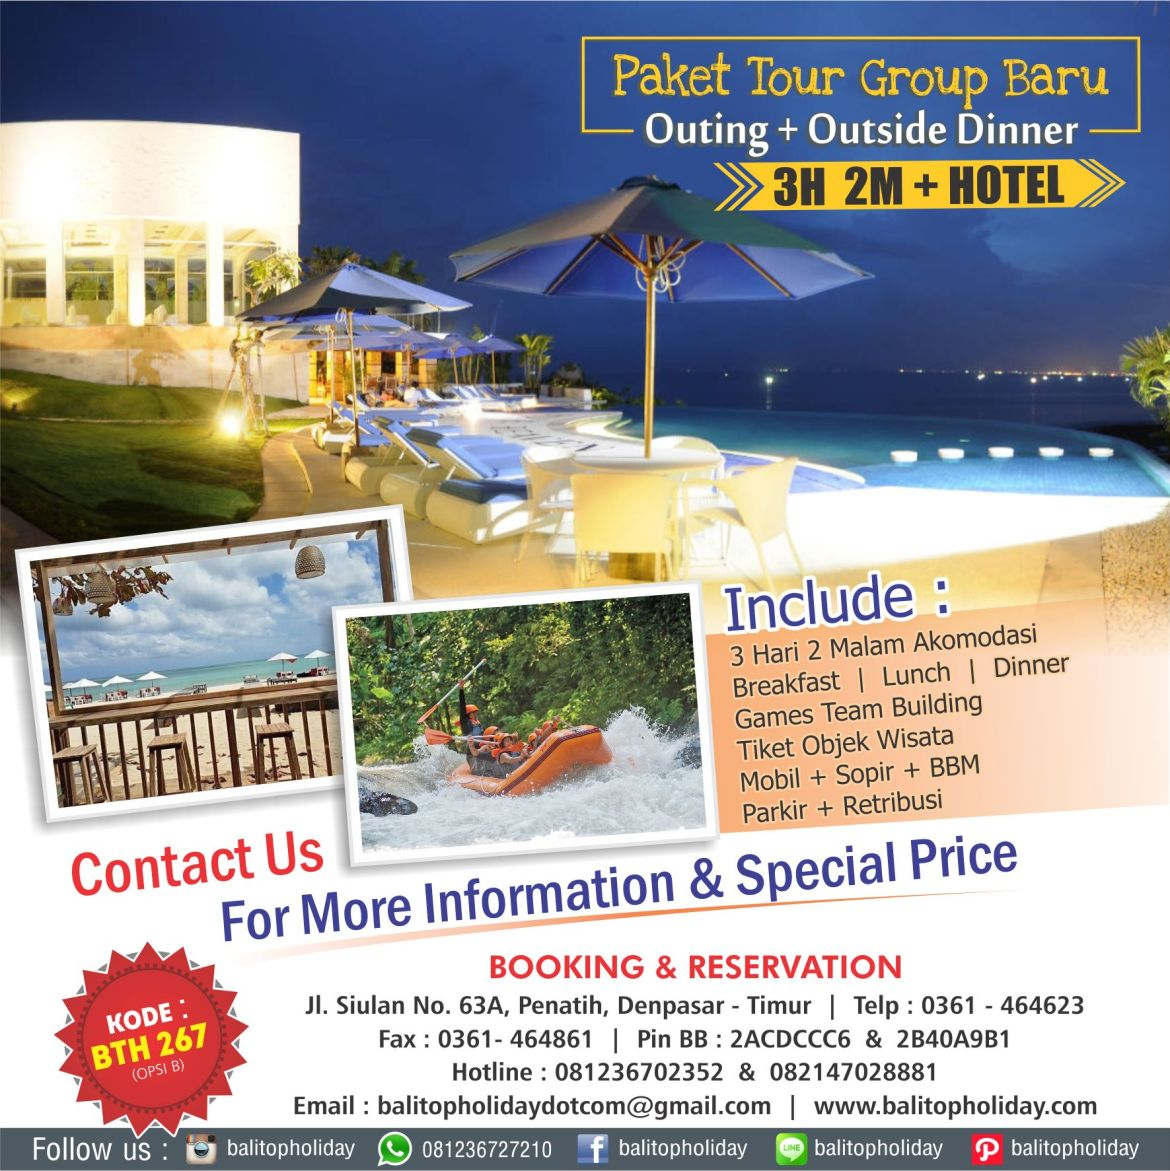 Paket Tour Group Baru 3 Hari 2 Malam + Hotel (Outing + Outside Dinner) OPSI B)